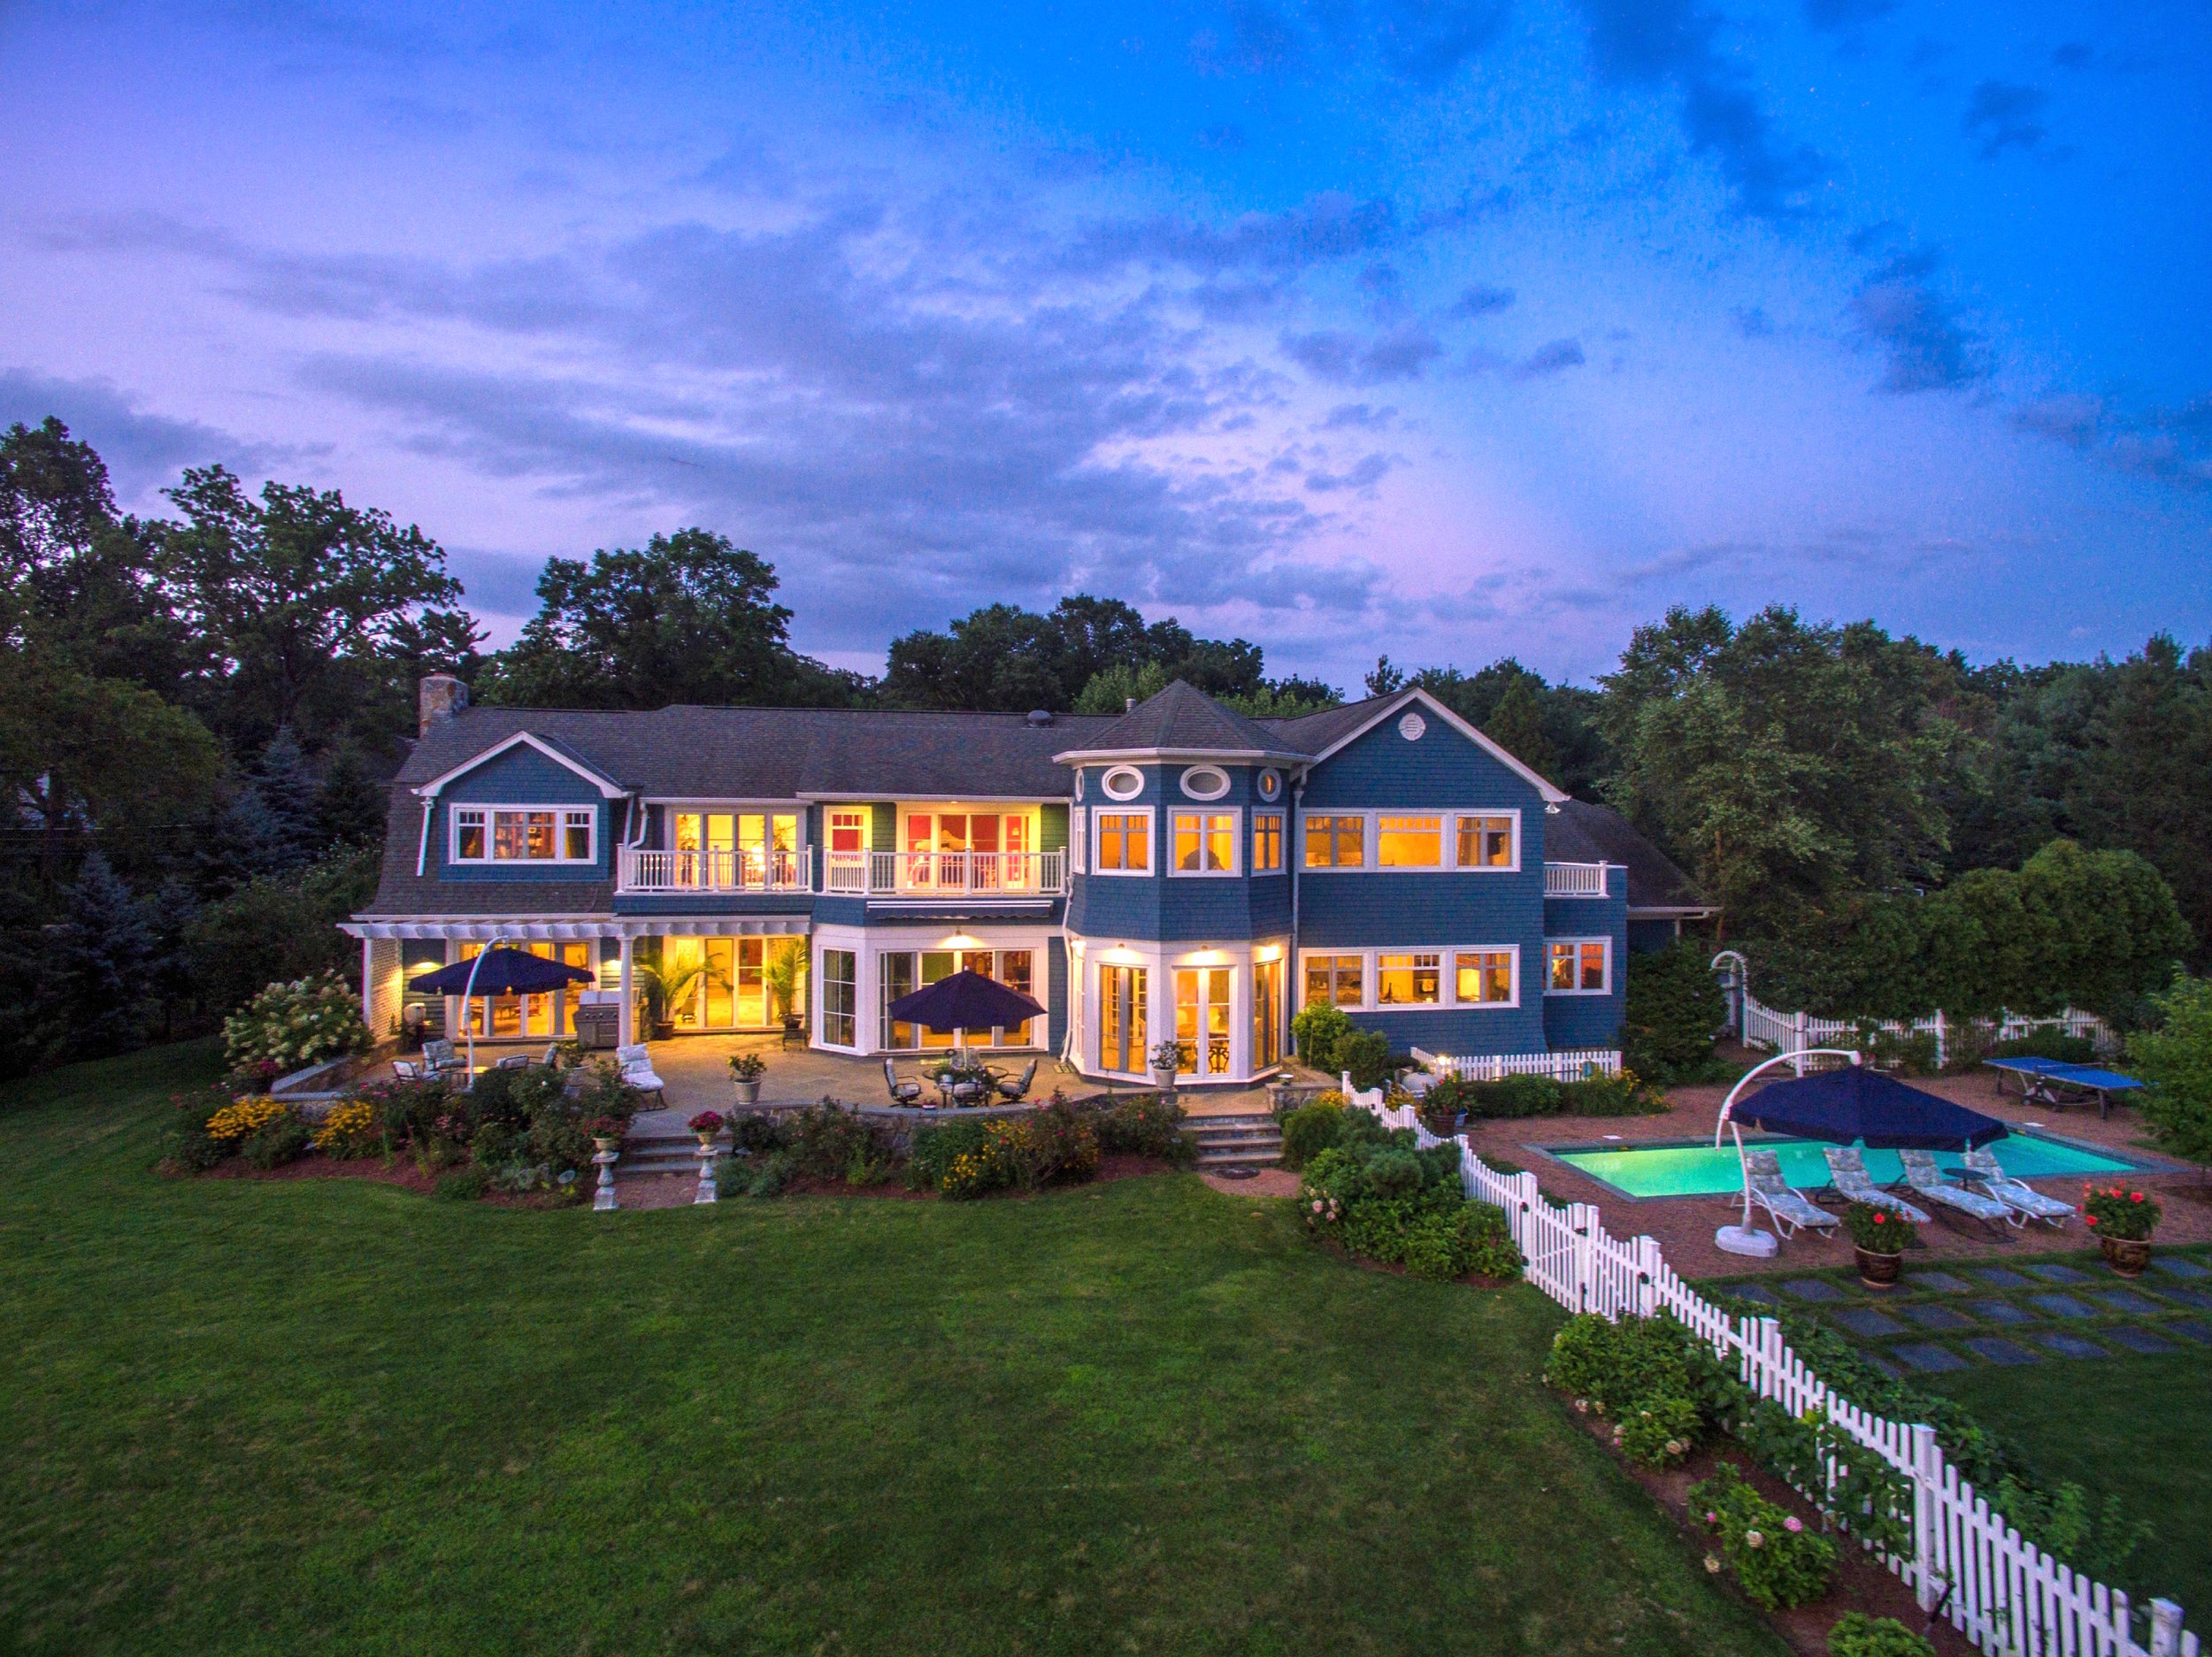 $6.5M | GREAT NECK, NY